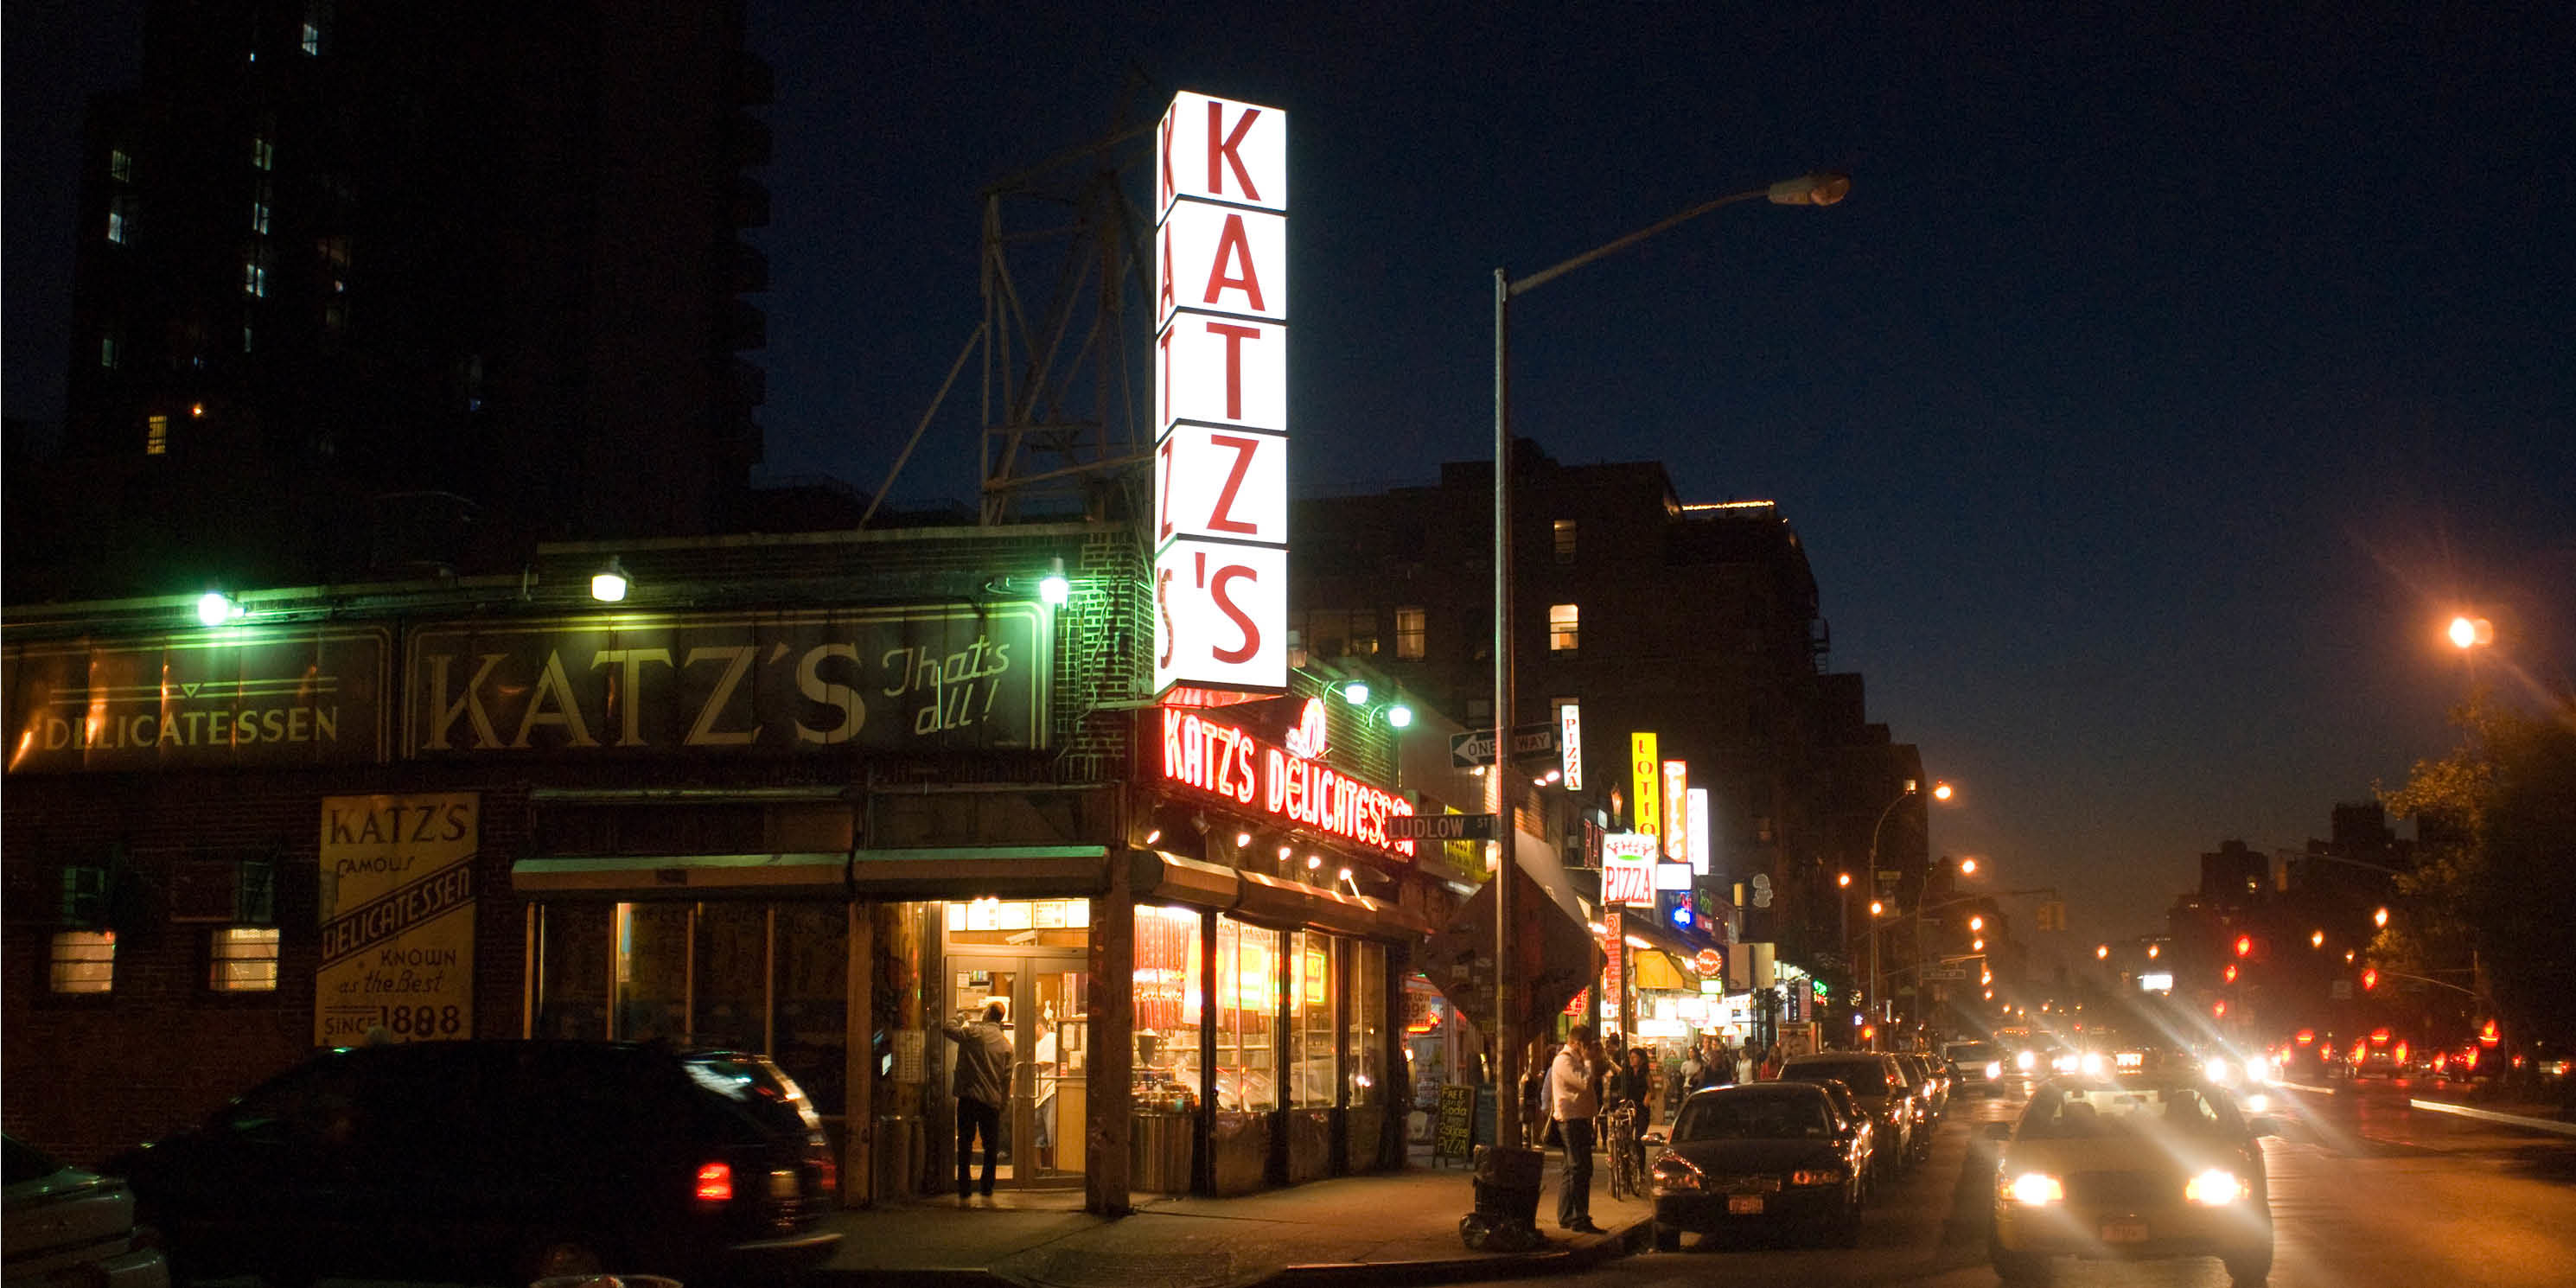 exterior of Katz's Deli at night